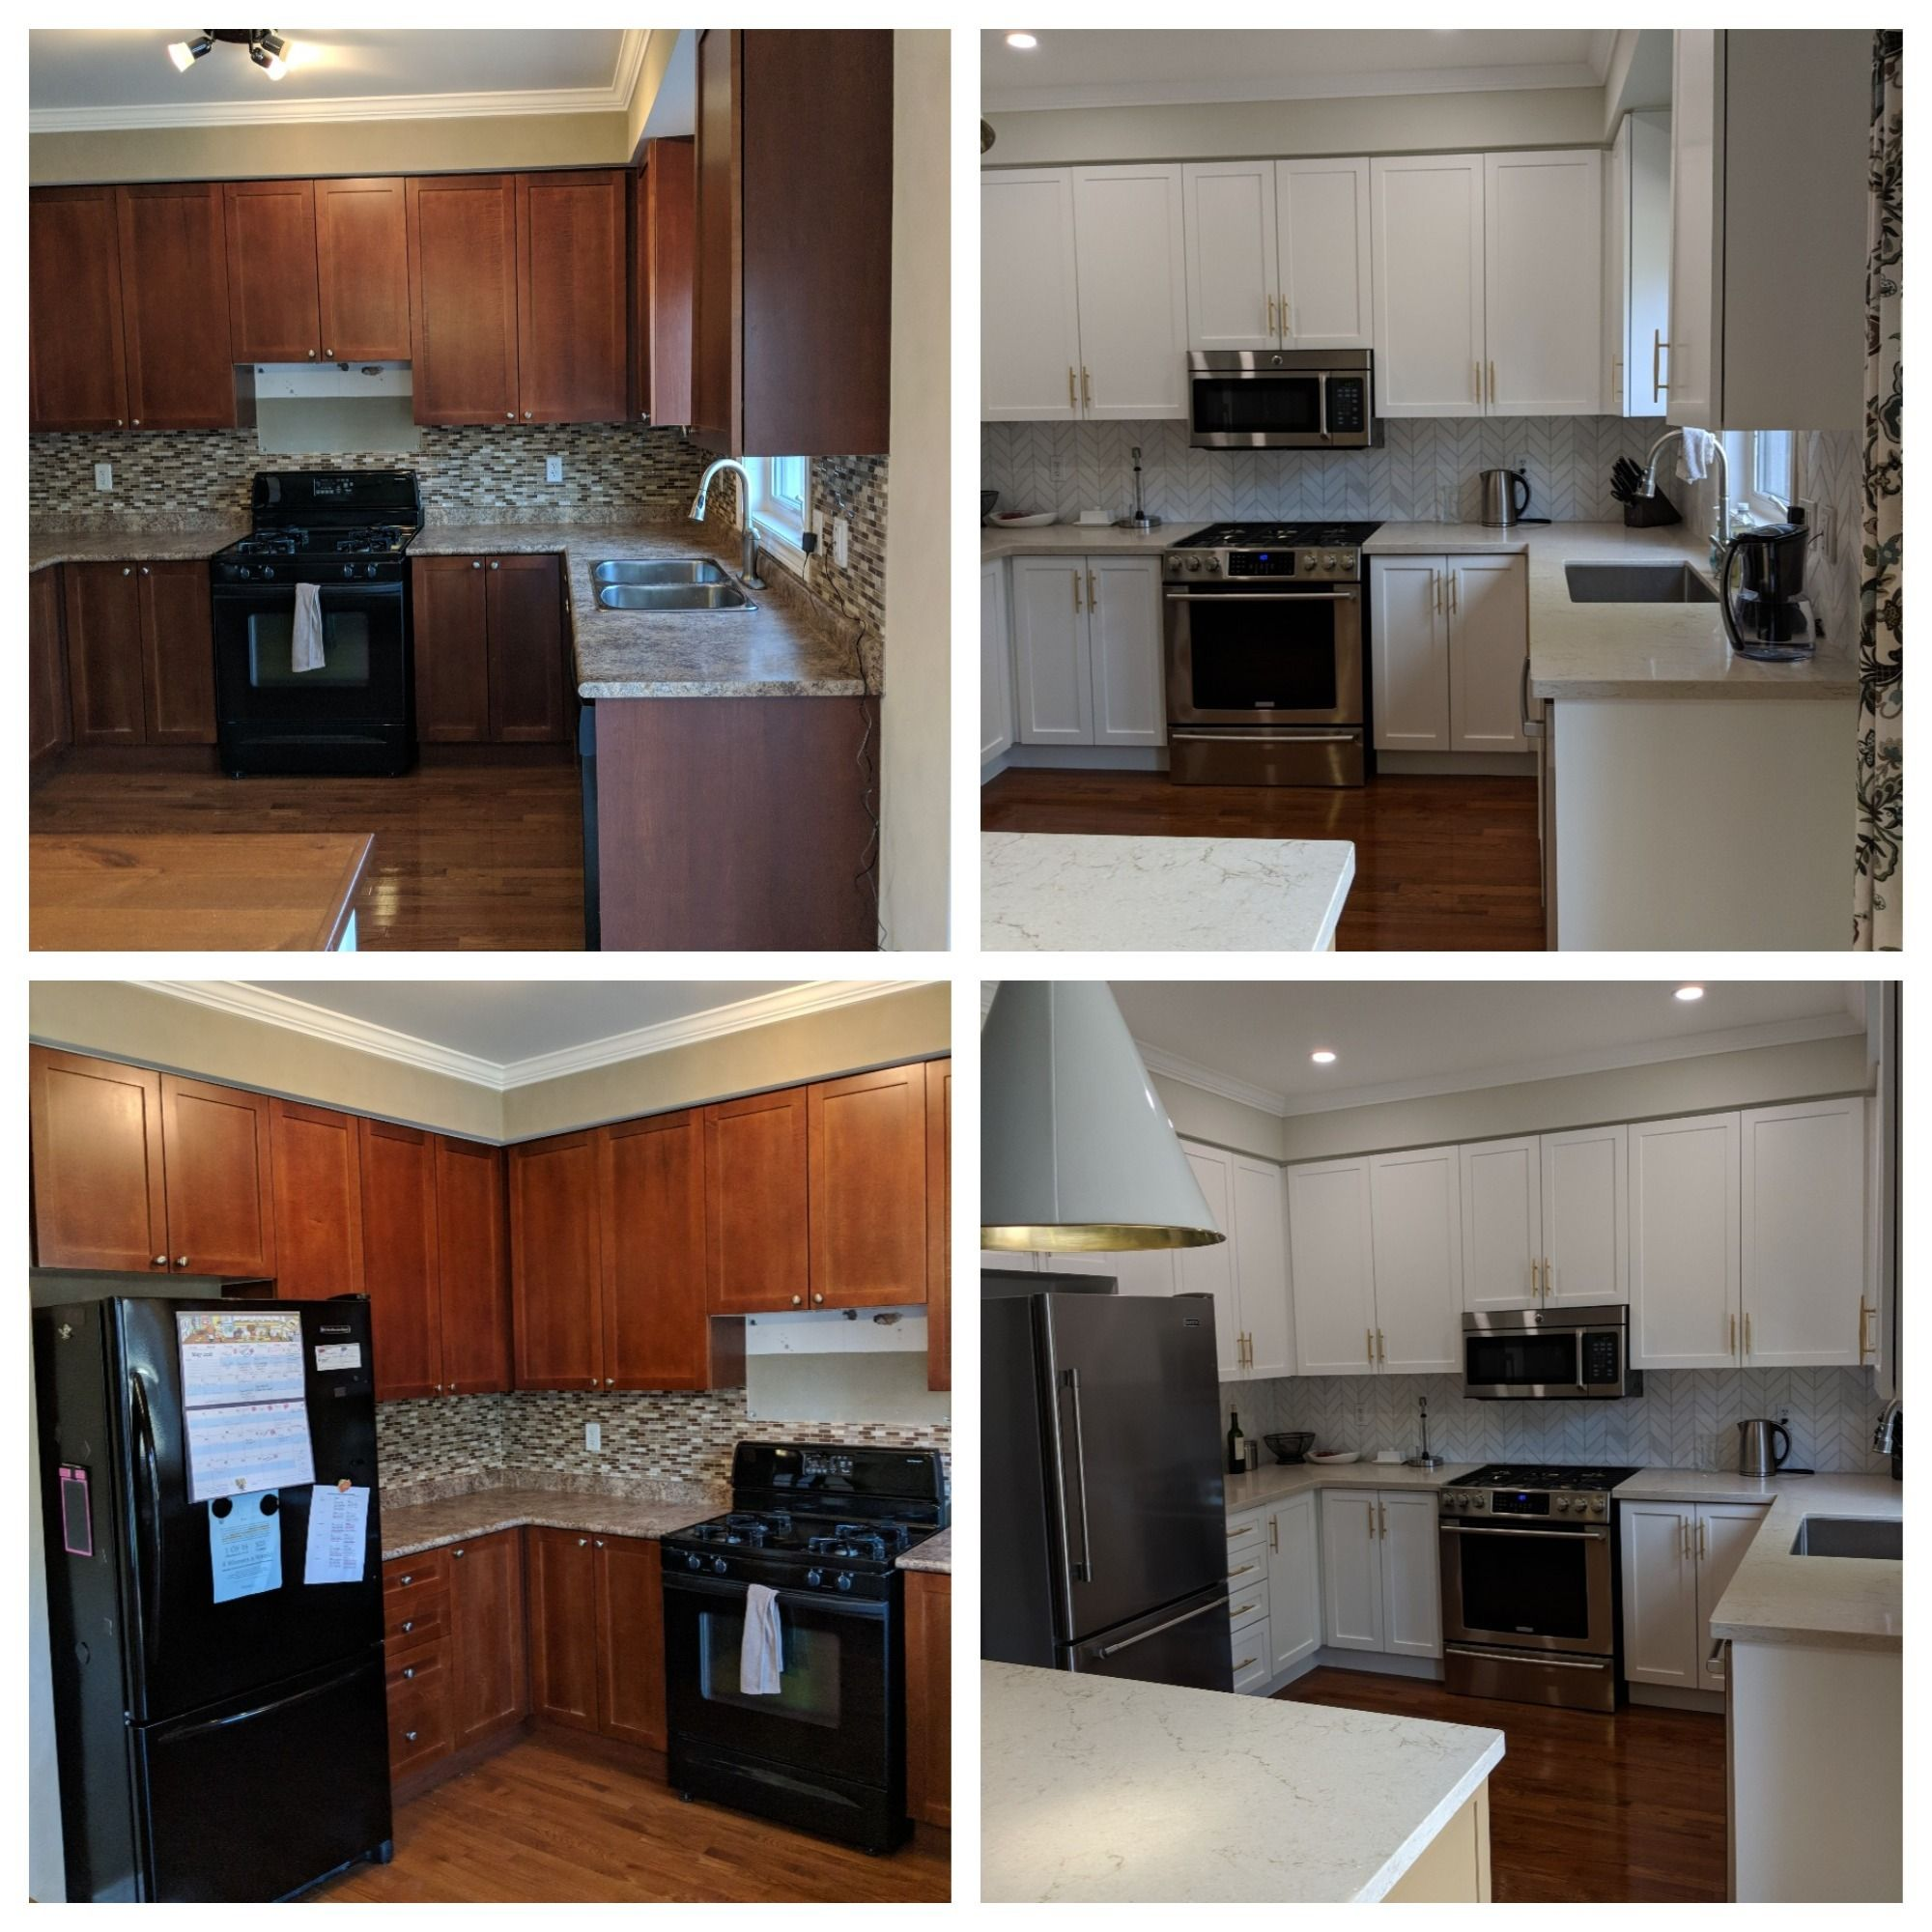 Another Kitchen Cabinet Refinishing Project Teamed Up With An Interior Decorator And Contracti Kitchen Cabinets Painting Kitchen Cabinets Refinishing Cabinets